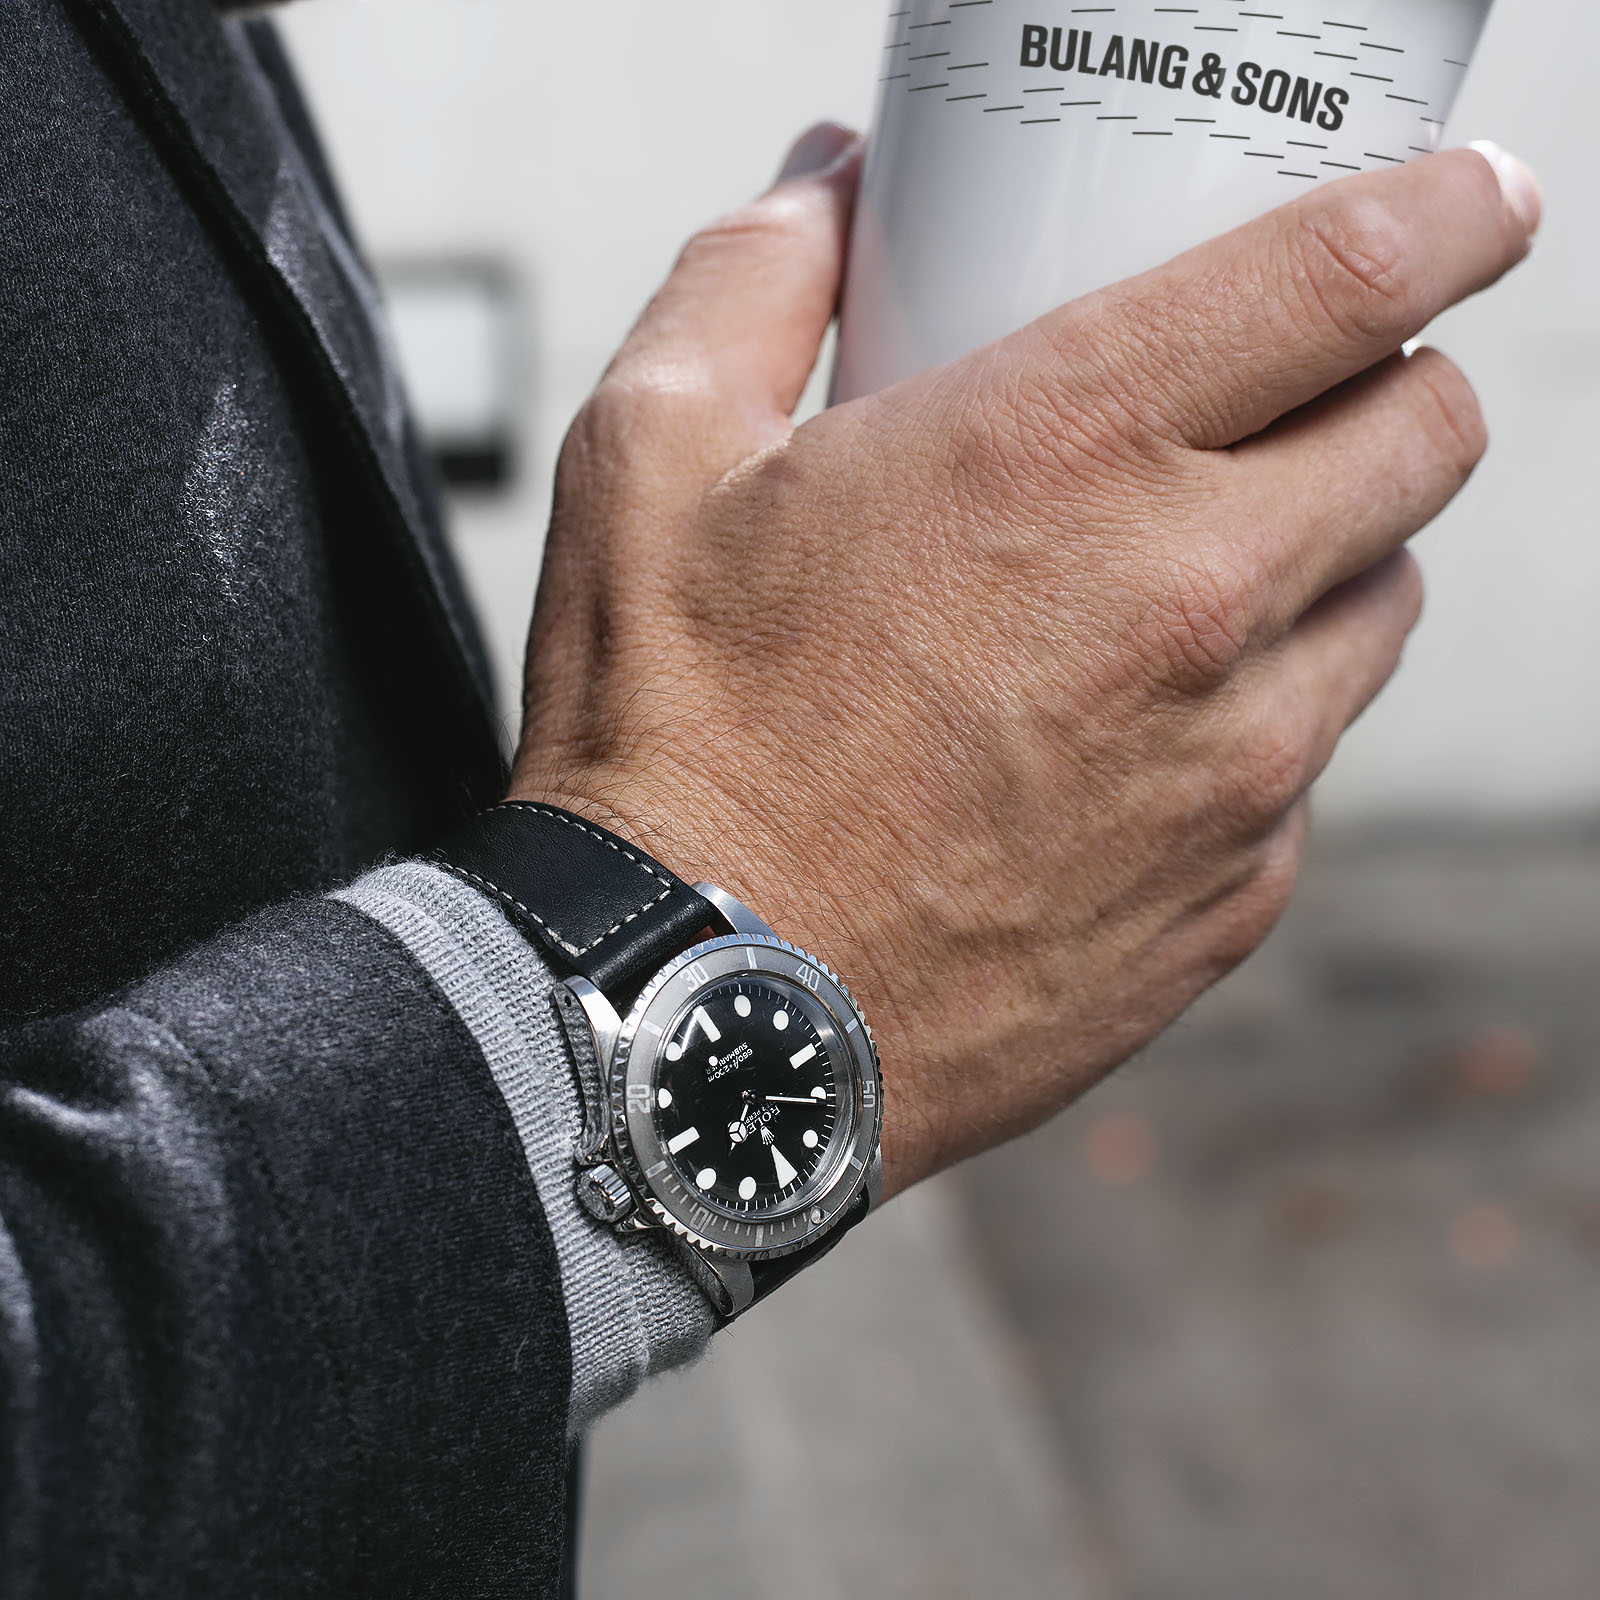 The 9 TO 5 Collection - Authentic Style for your Business and Life, Rolex 5513 Maxi Submariner on a Bulang and Sons Leather Watch Strap